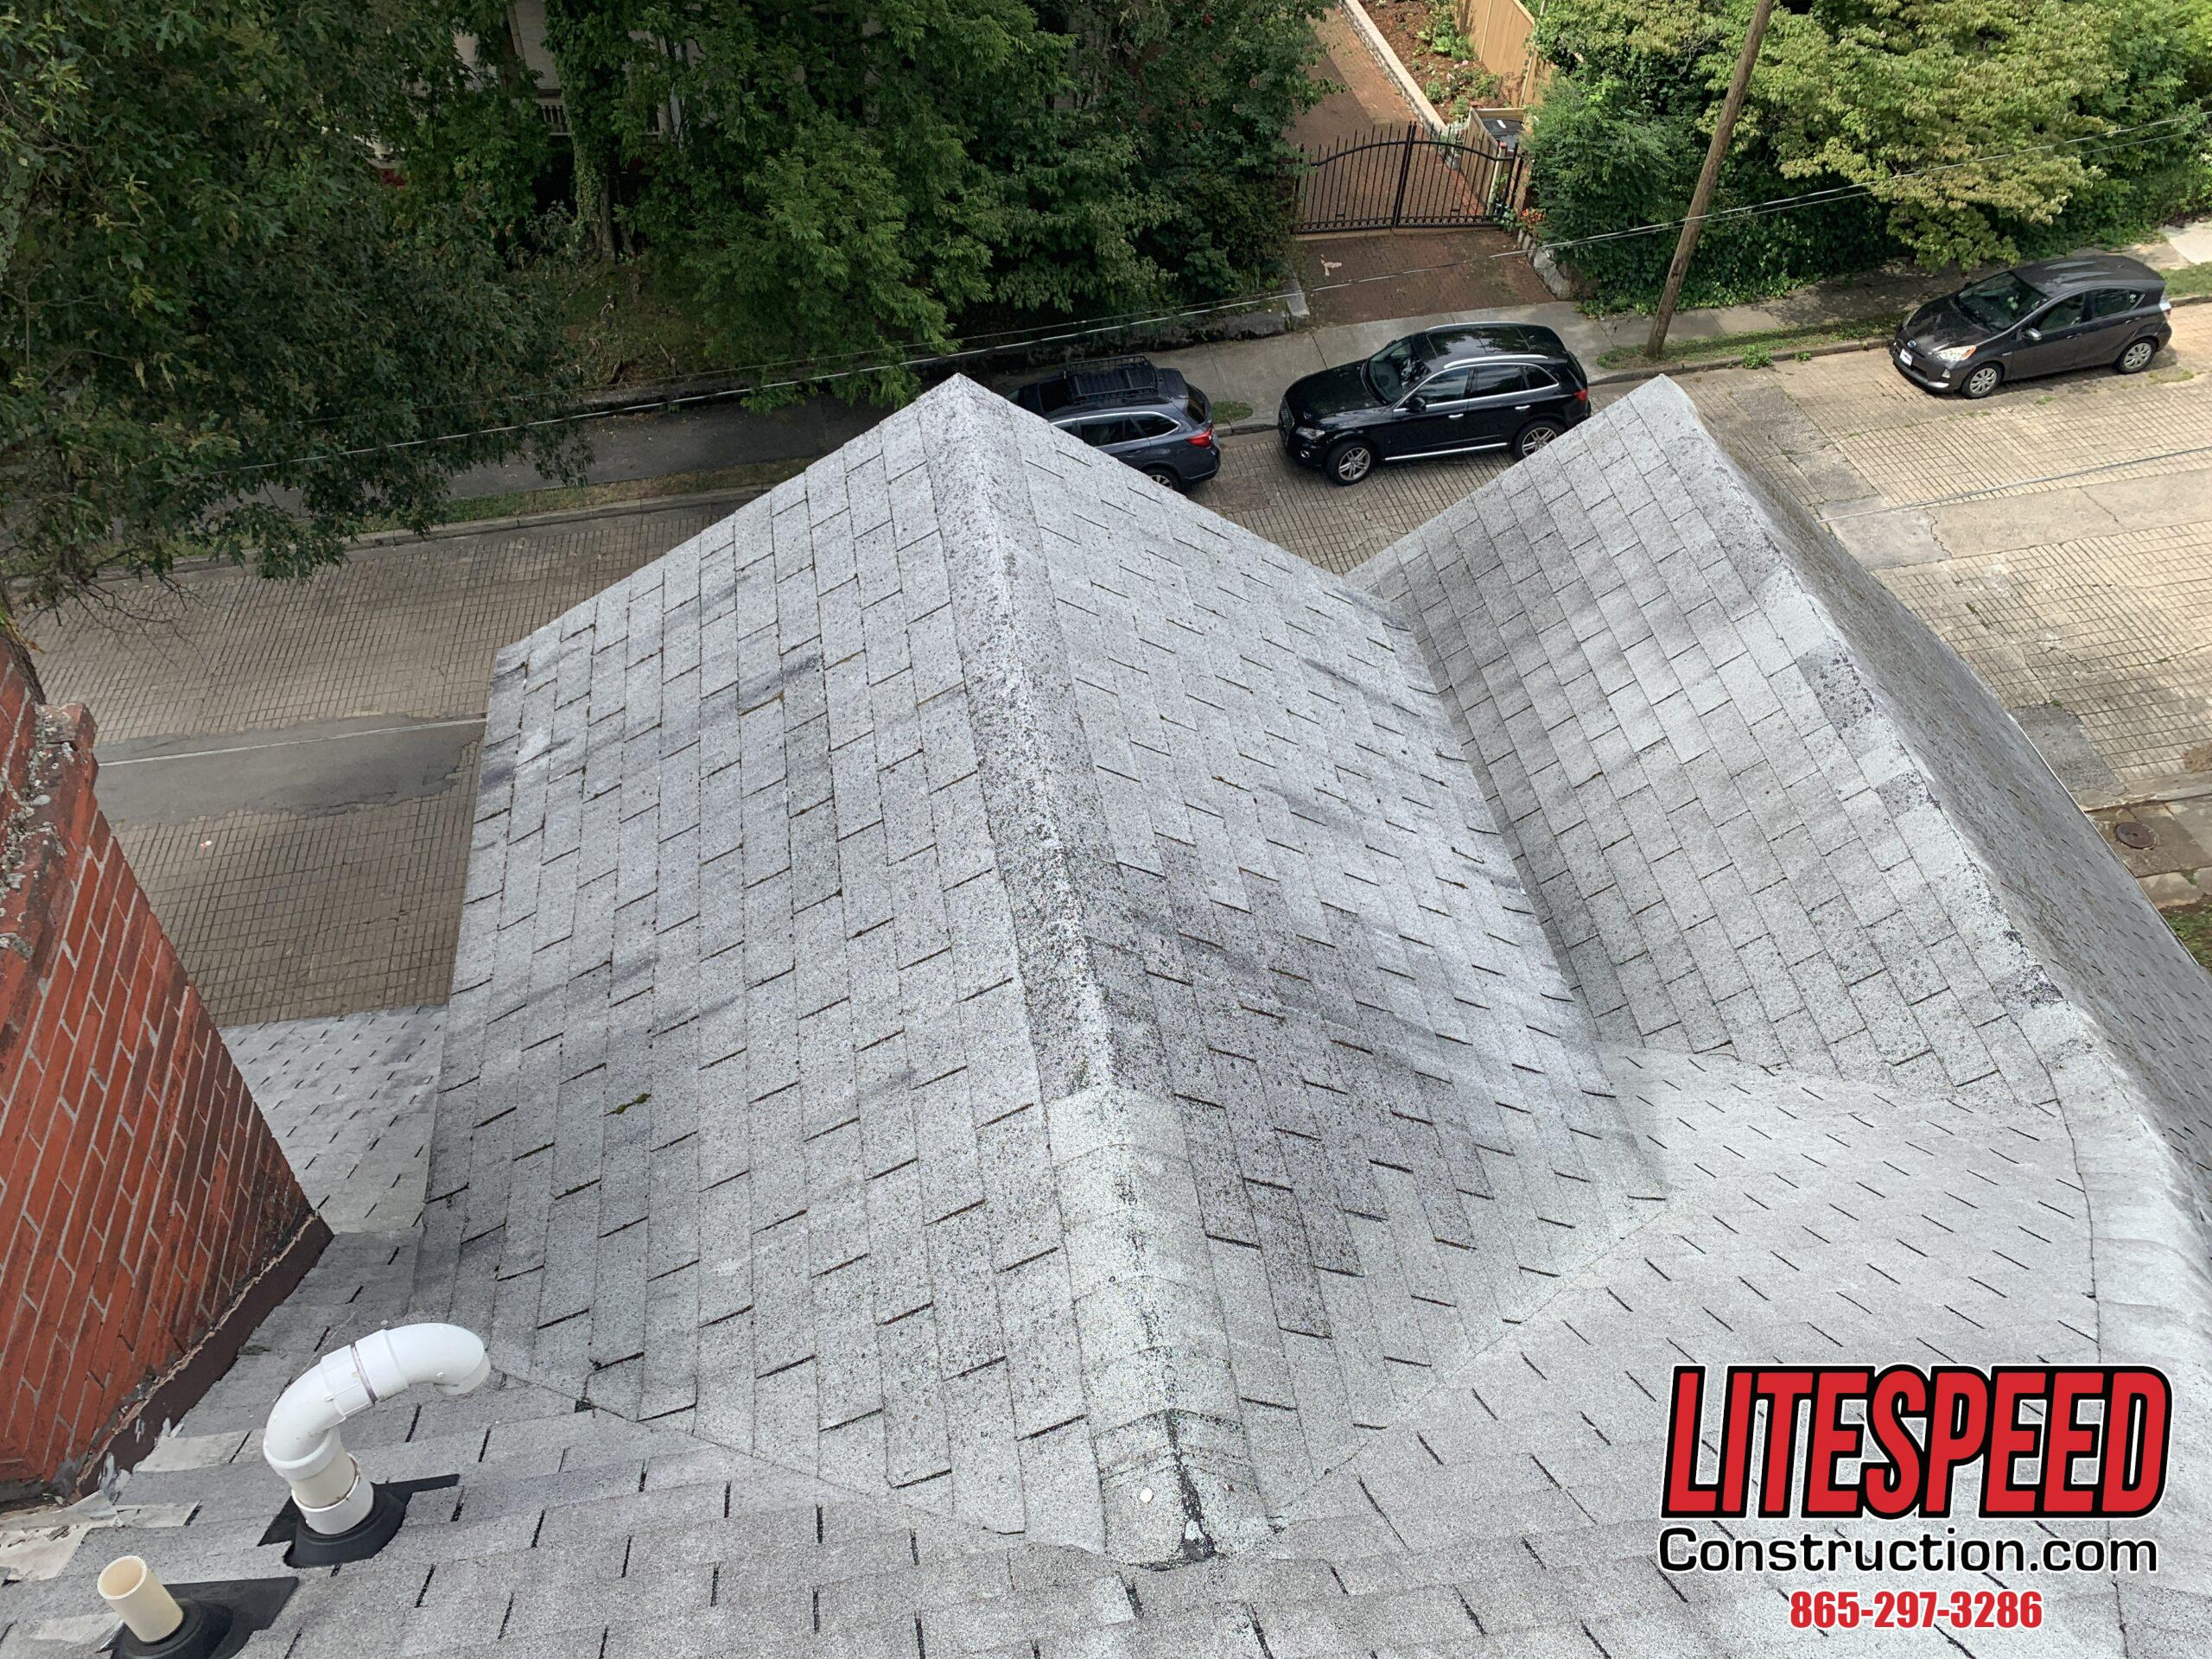 This roof is steep and cut up.  There are over 35 facets